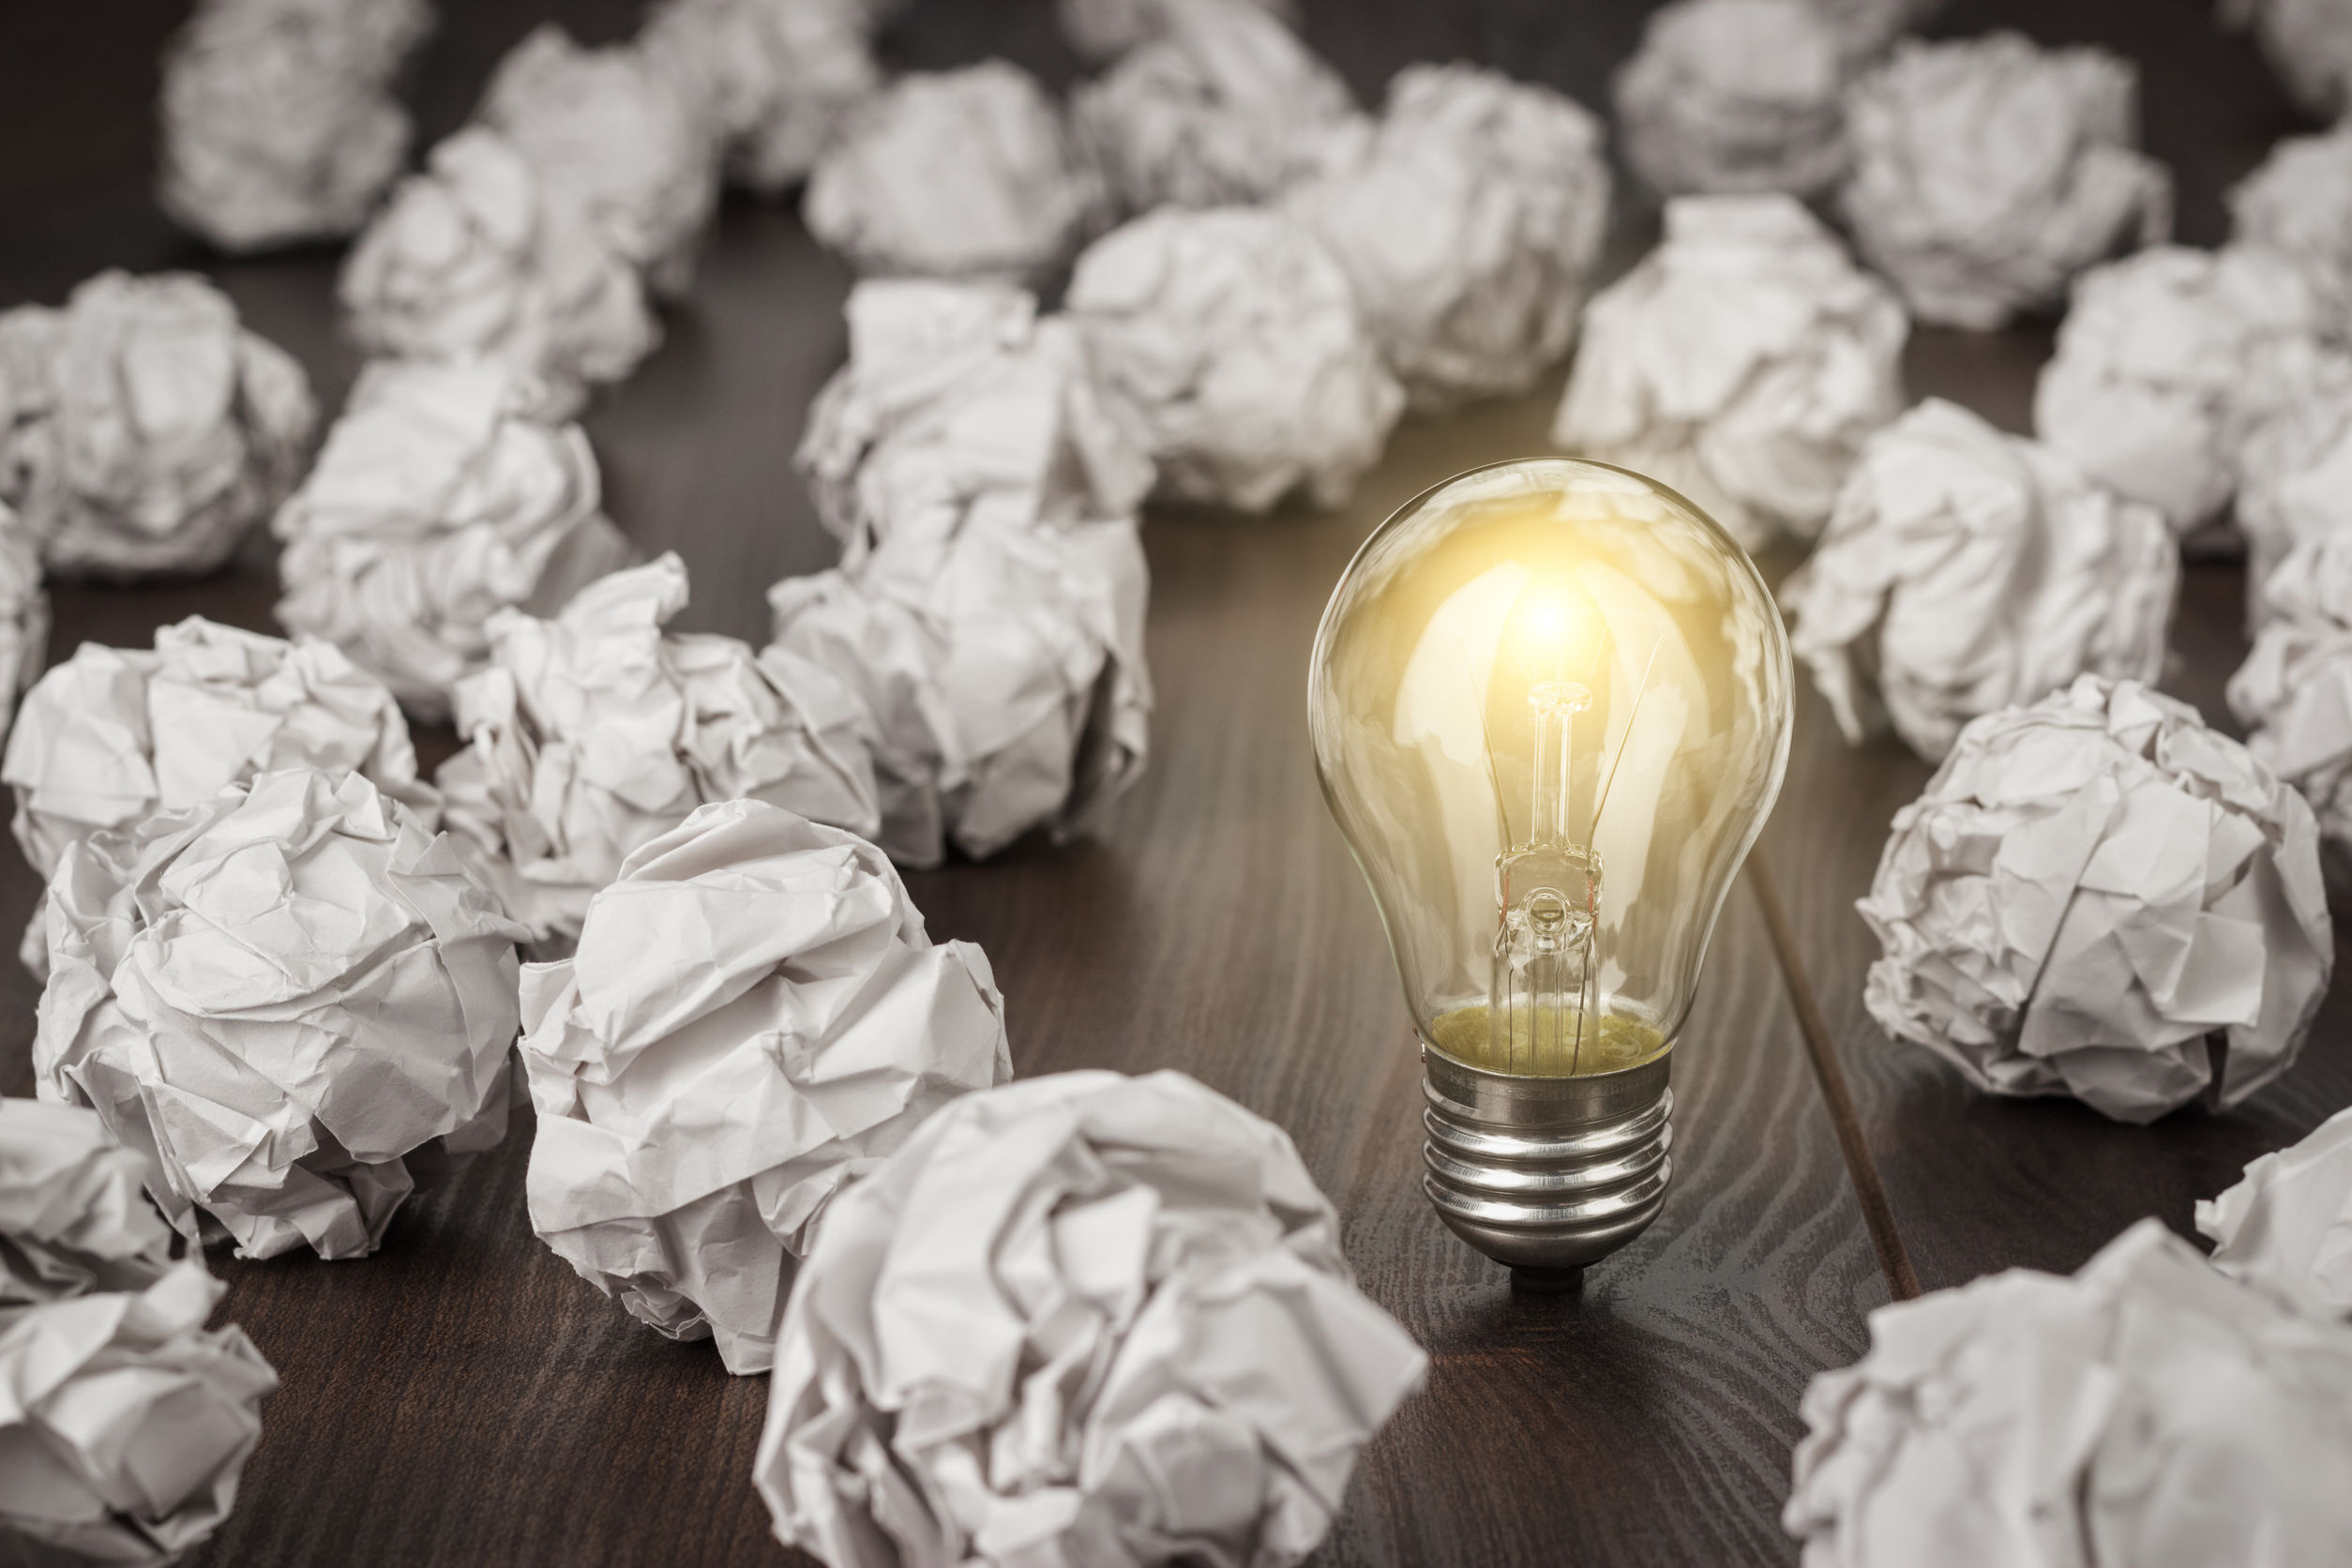 ligthed lightbulb crumpled paper in wooden desk growth mindset interventions are not effective